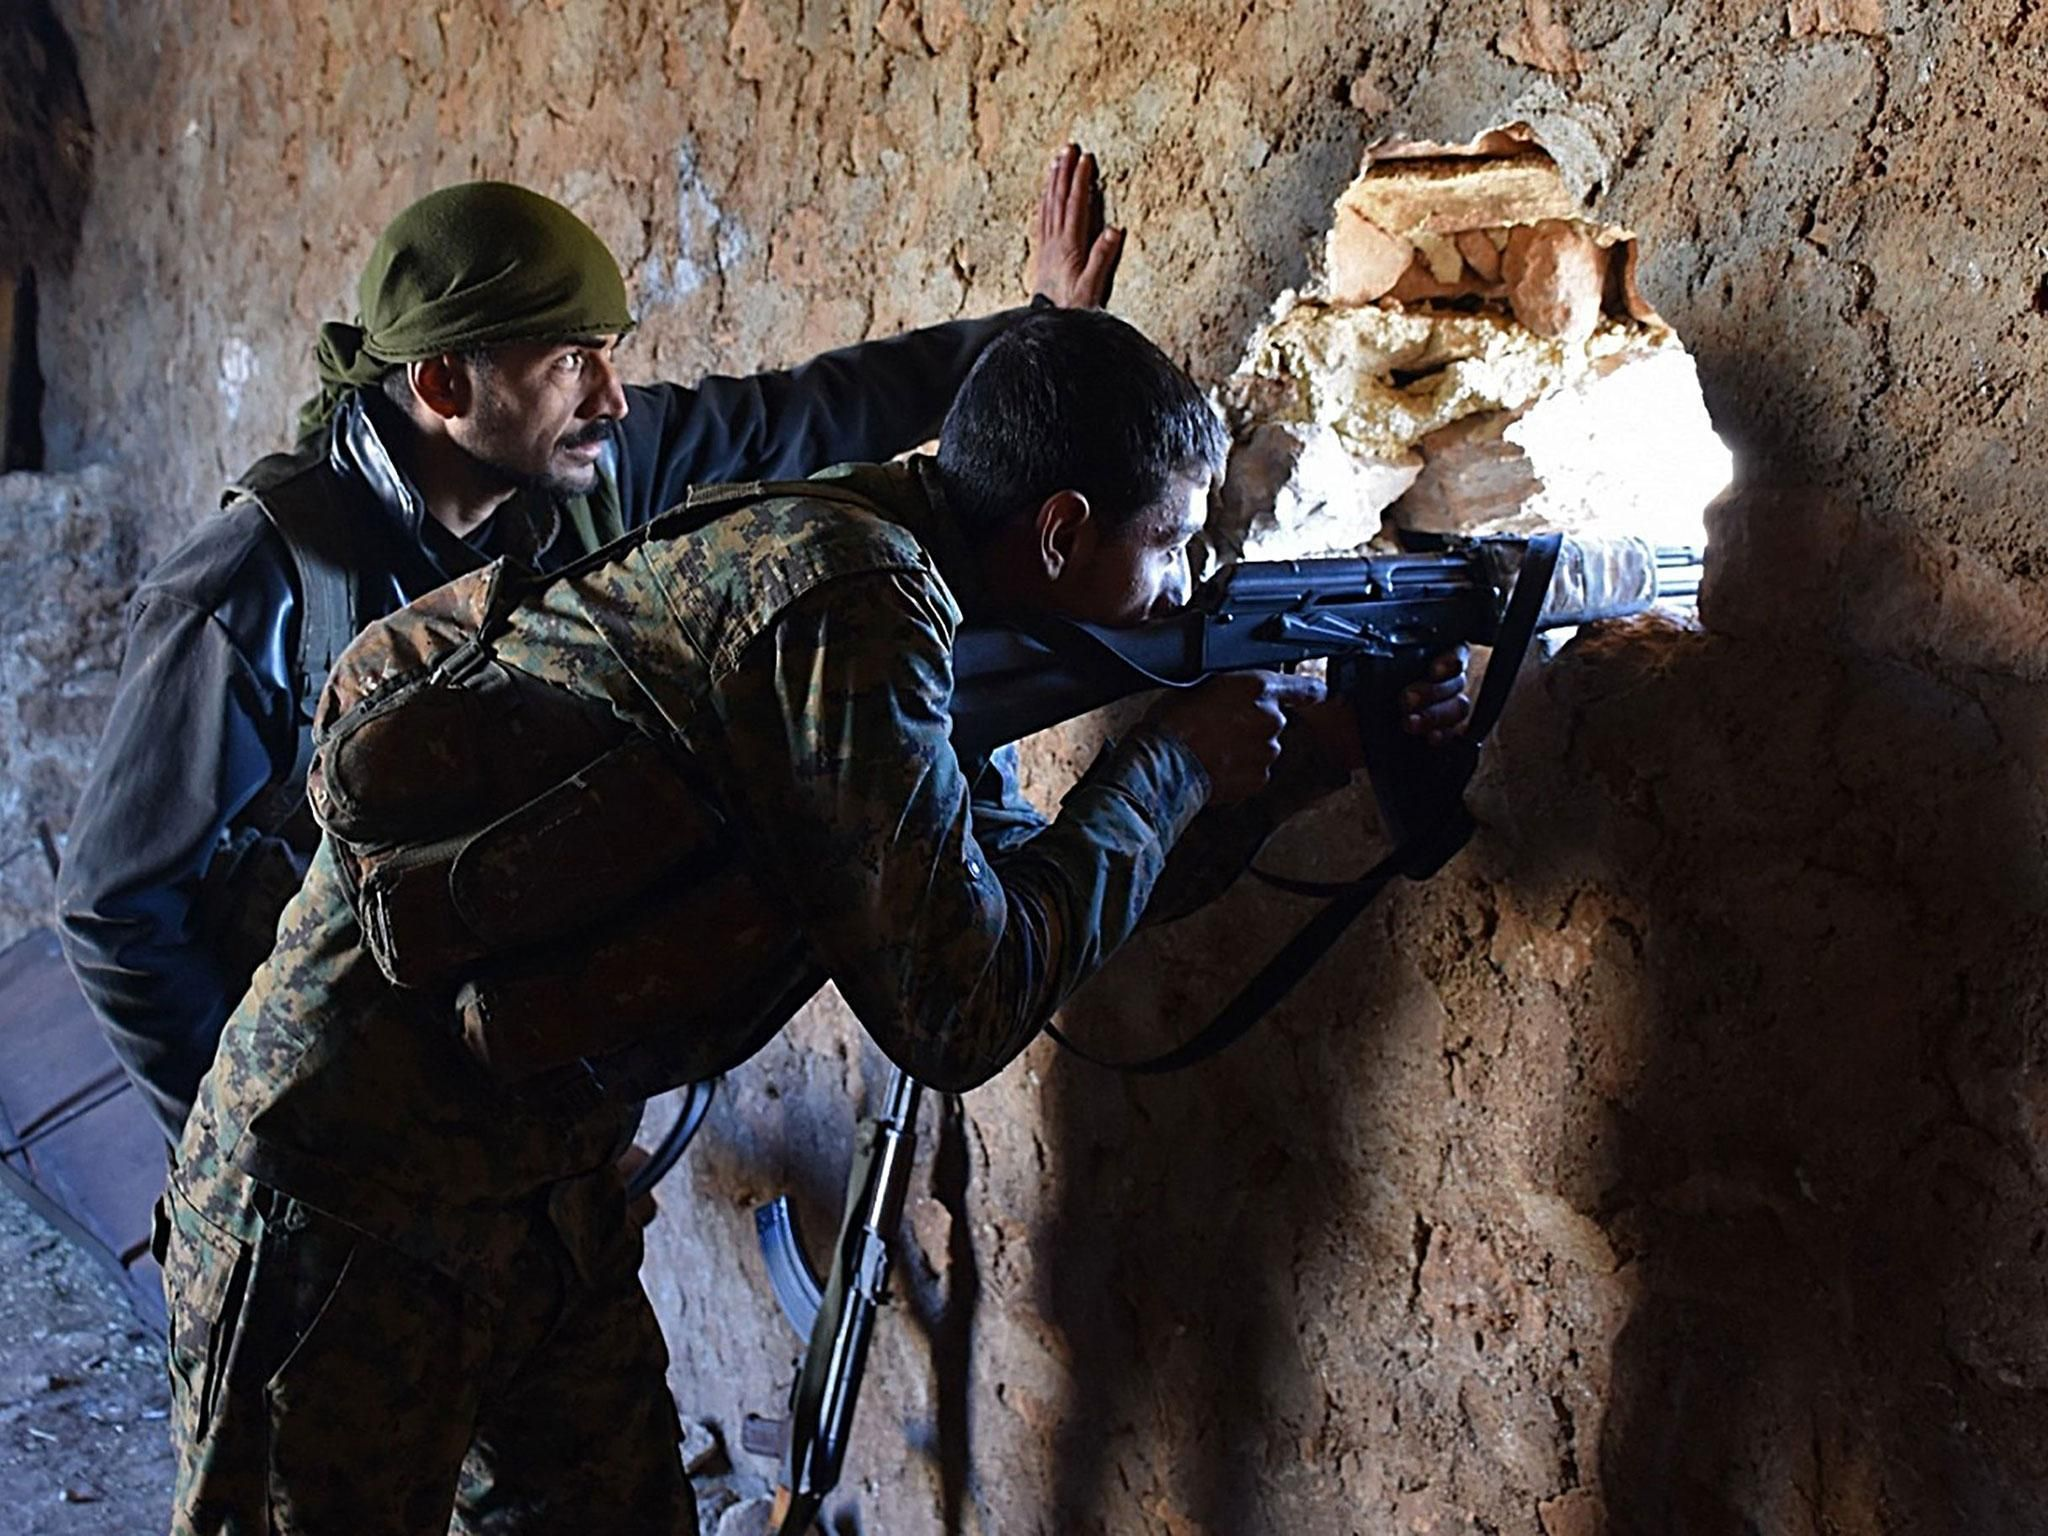 Syria civil war All eyes on strategic town of al-Bab marking a crucial new phase in the conflict - The Independent